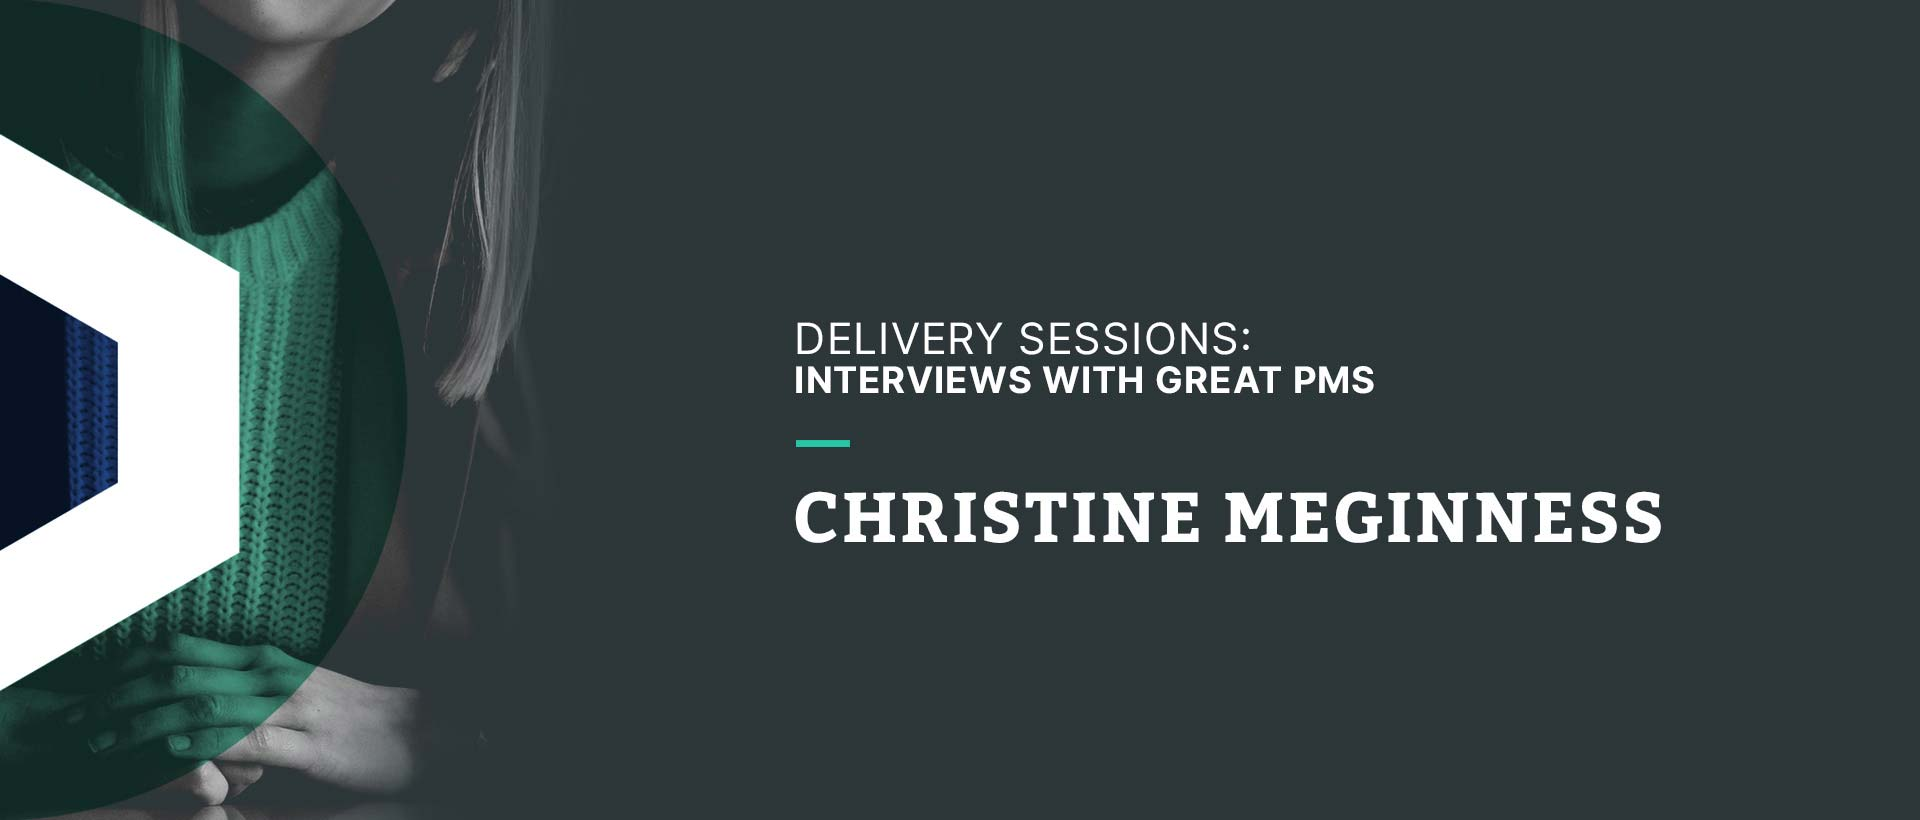 Delivery Sessions: Interviews with Great PMs (Christine Meginness)